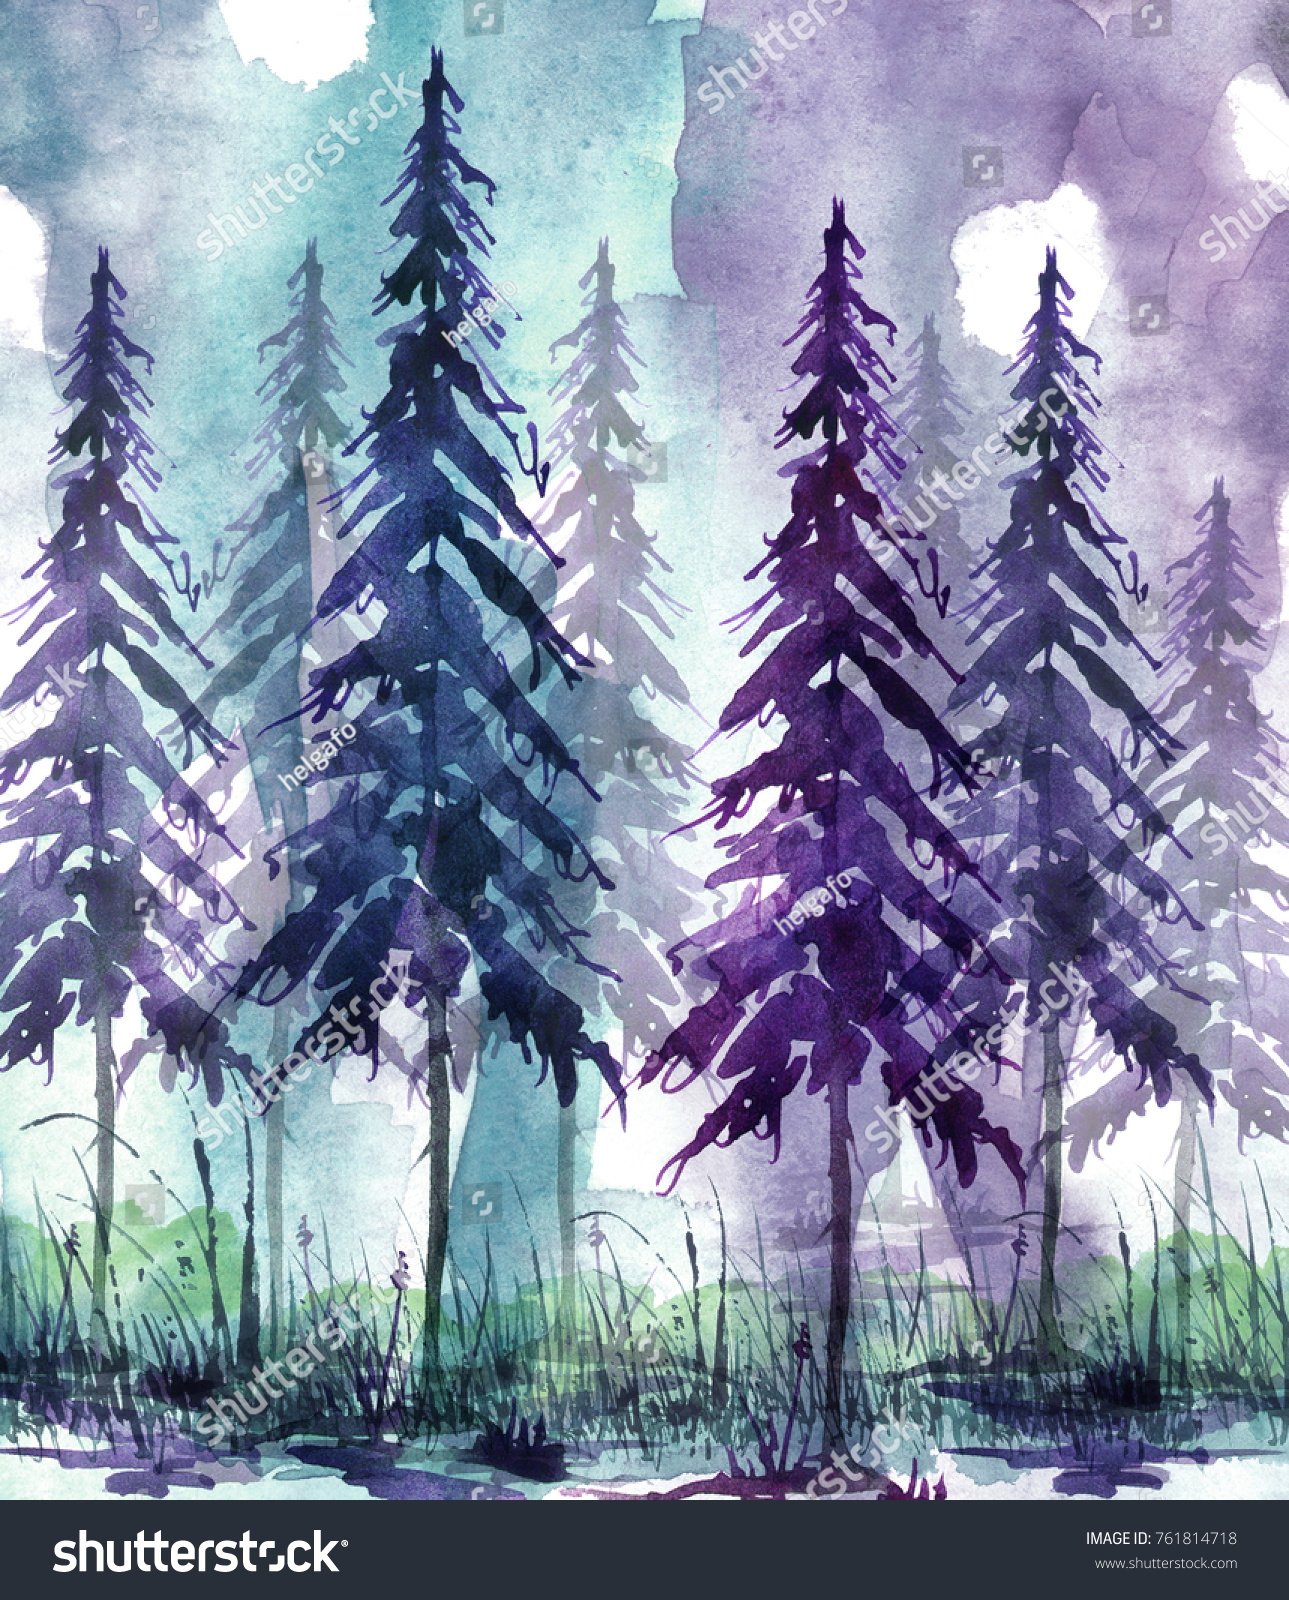 The trees are dense and the air is thick. Watercolor Art Illustration Drawing Forest Pine Stock Illustration 761814718